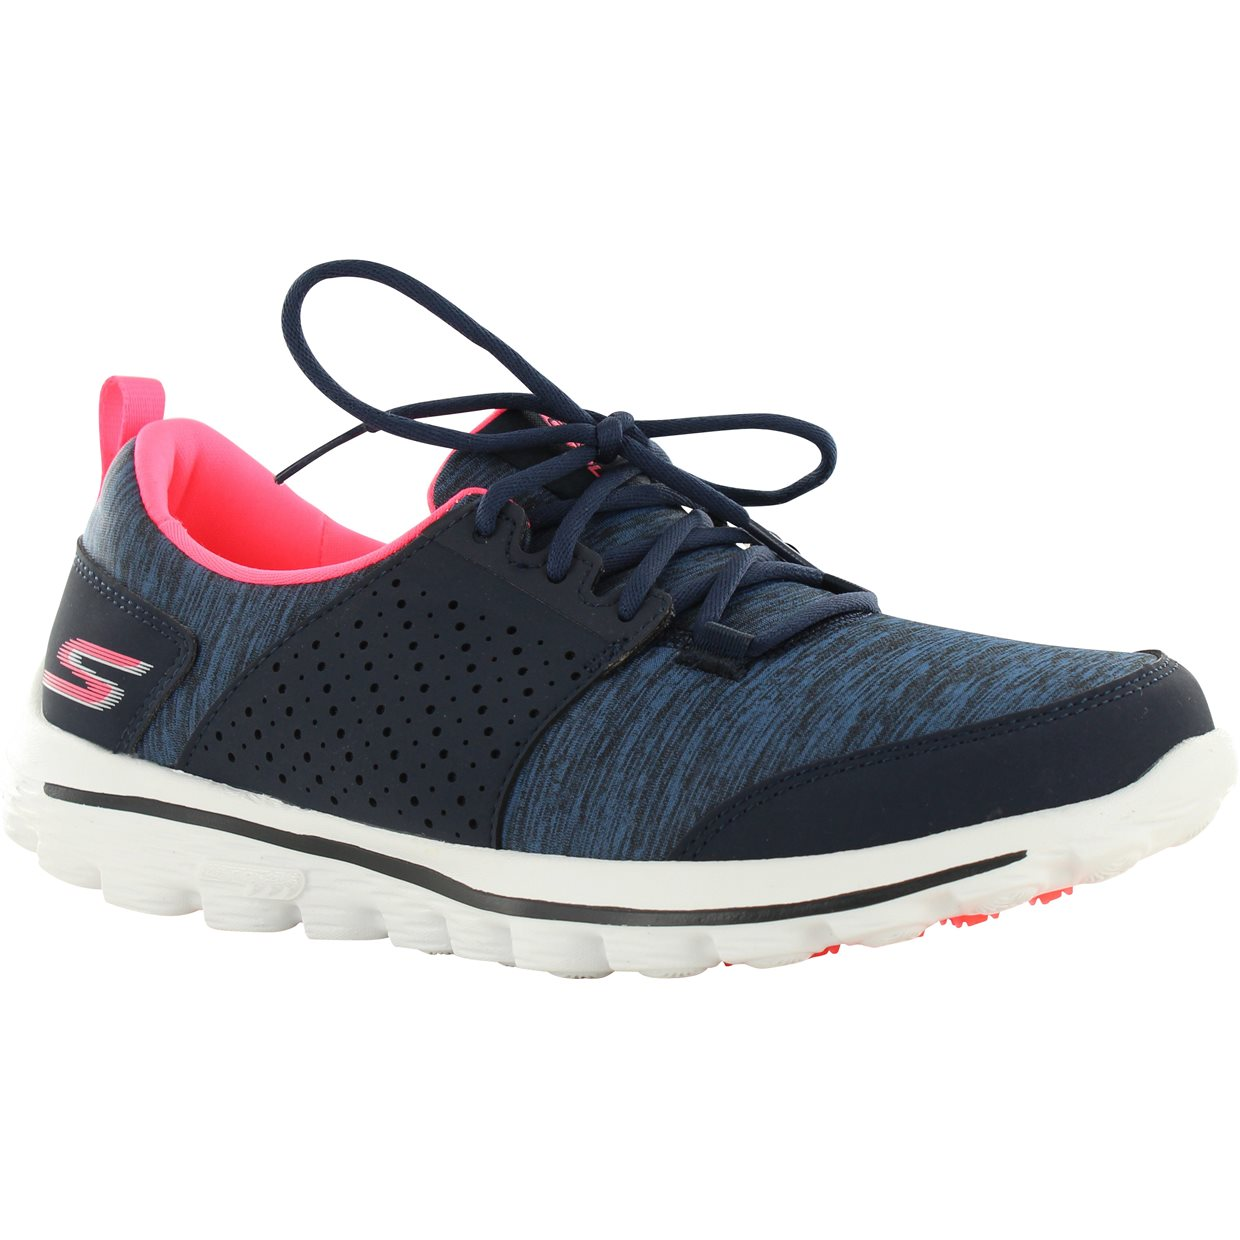 27c2c626b10ed0 Skechers Go Walk 2 Relaxed Fit Sugar Ladies Casual Shoes at ...